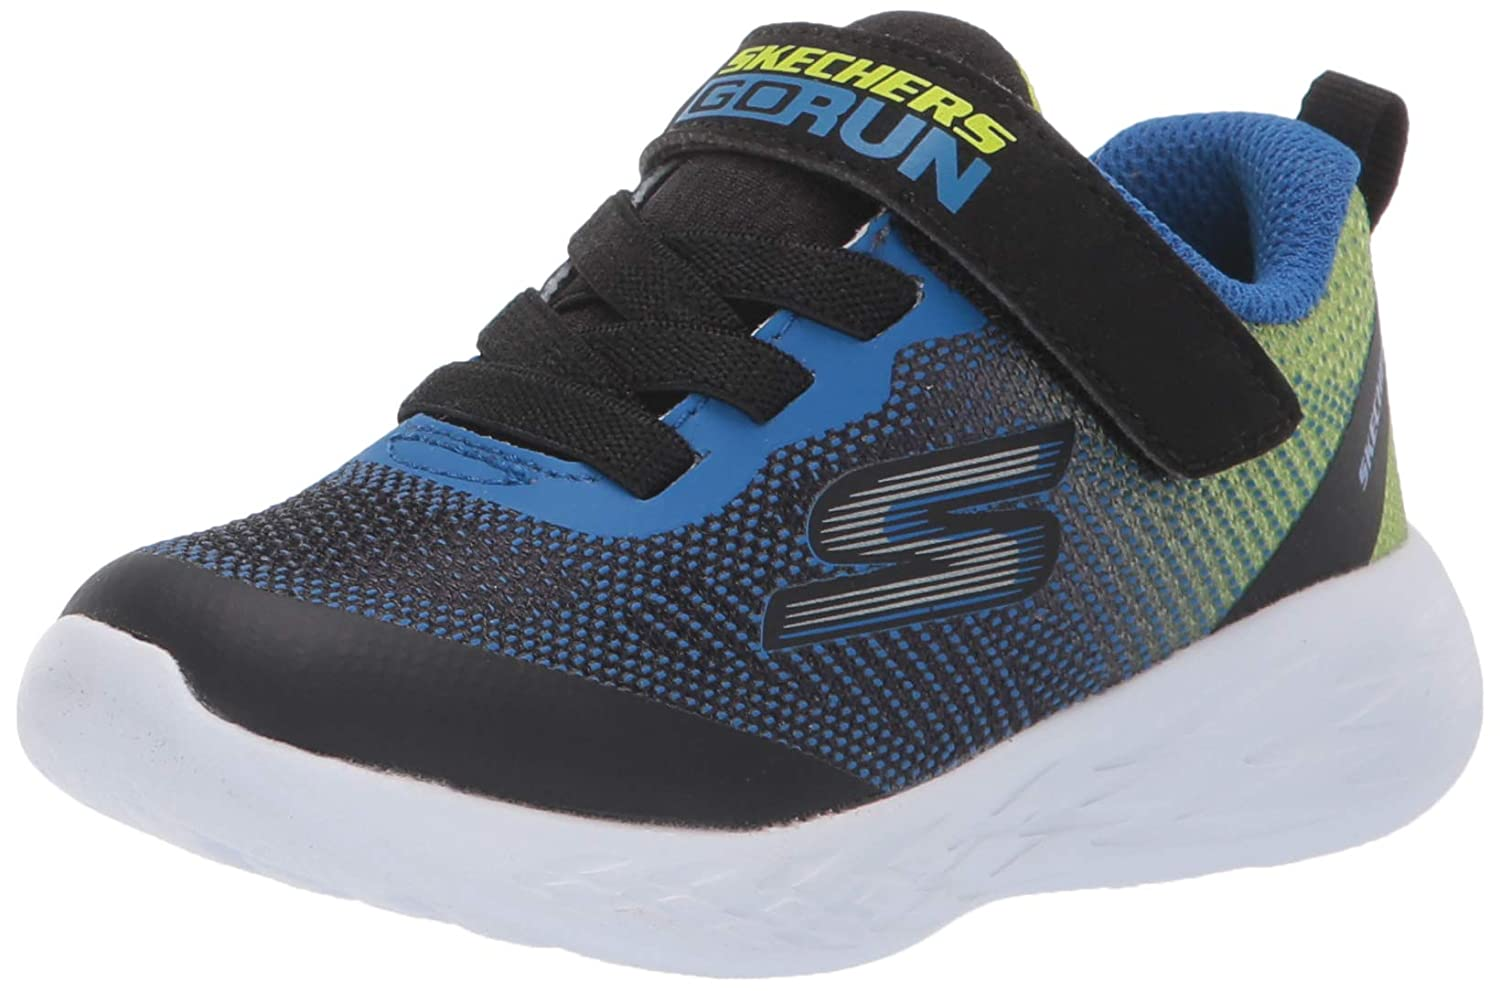 Skechers GO RUN 600 FARROX INFANTS